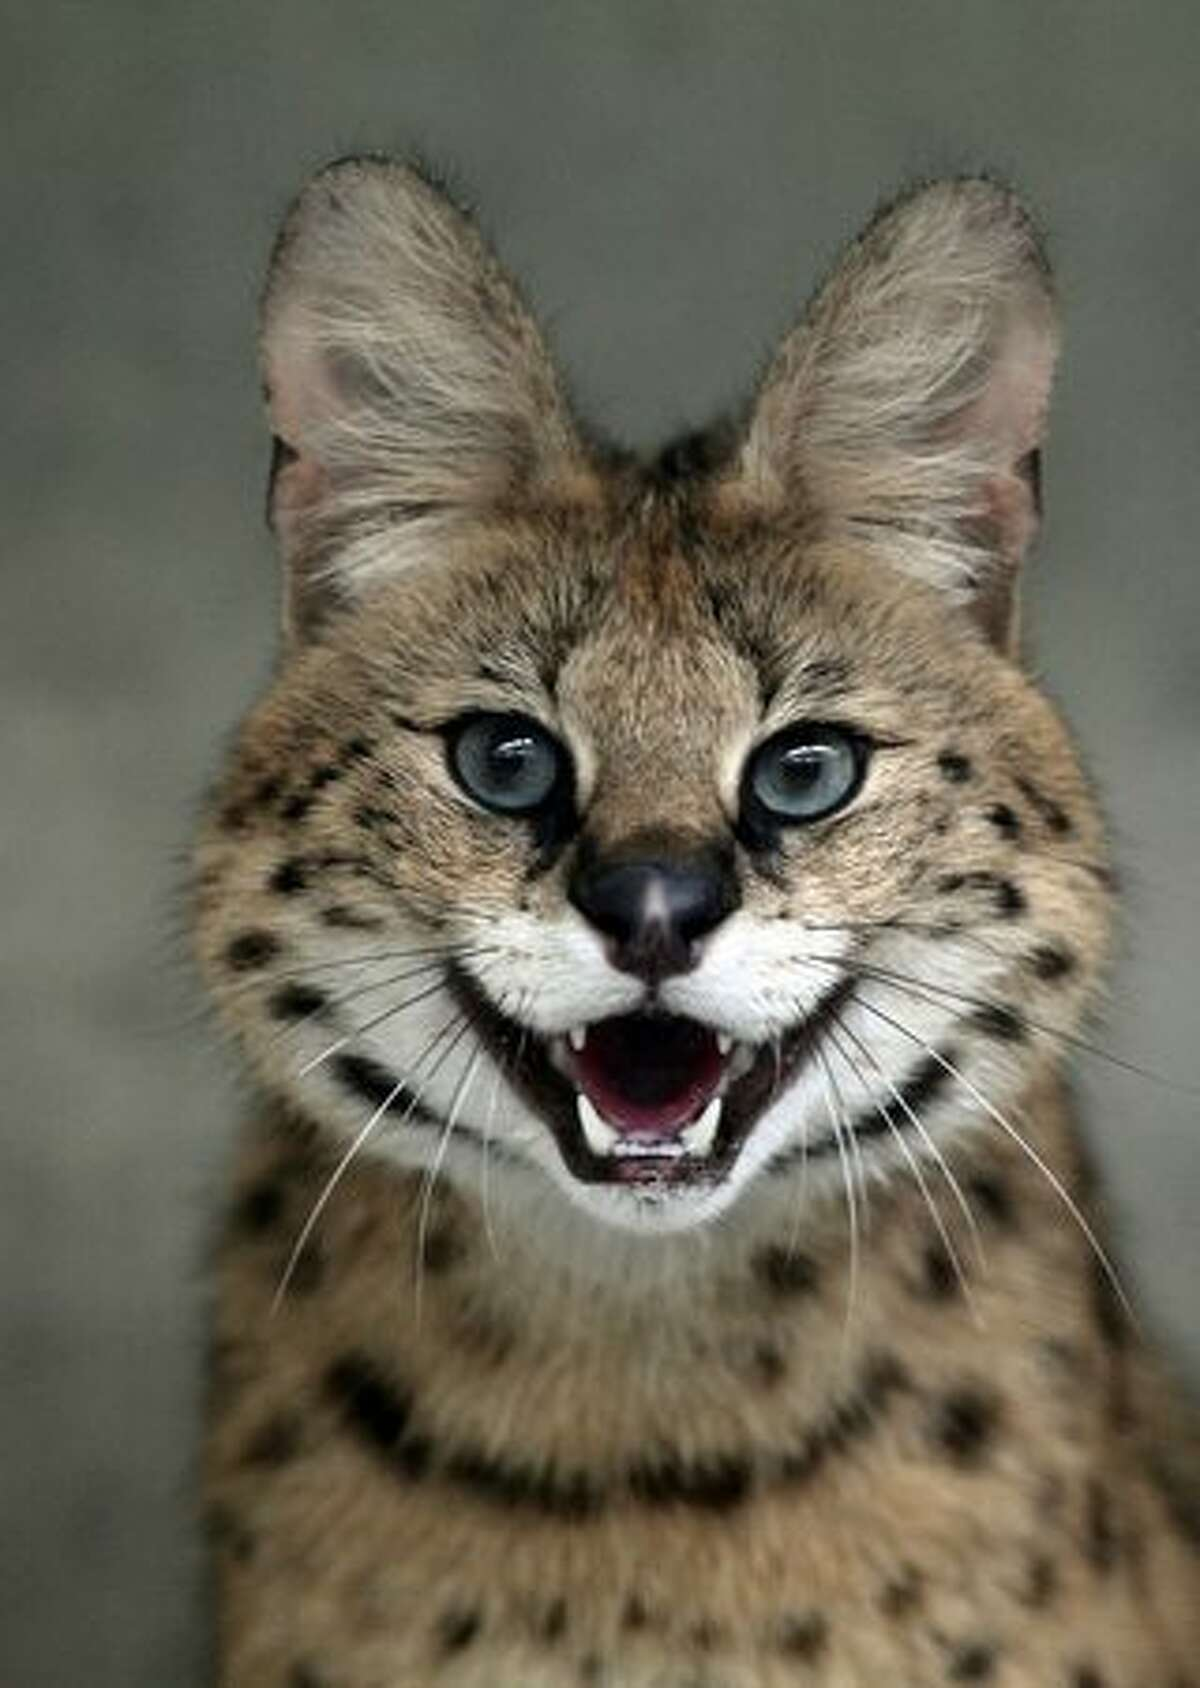 A serval hisses in its enclosure in a zoo in Leipzig, eastern Germany on May 11, 2010. The Leipzig zoo was created in June 1878 and is now, with 342 births of Siberian tigers in 50 years, one of the most successful breeding zoos.